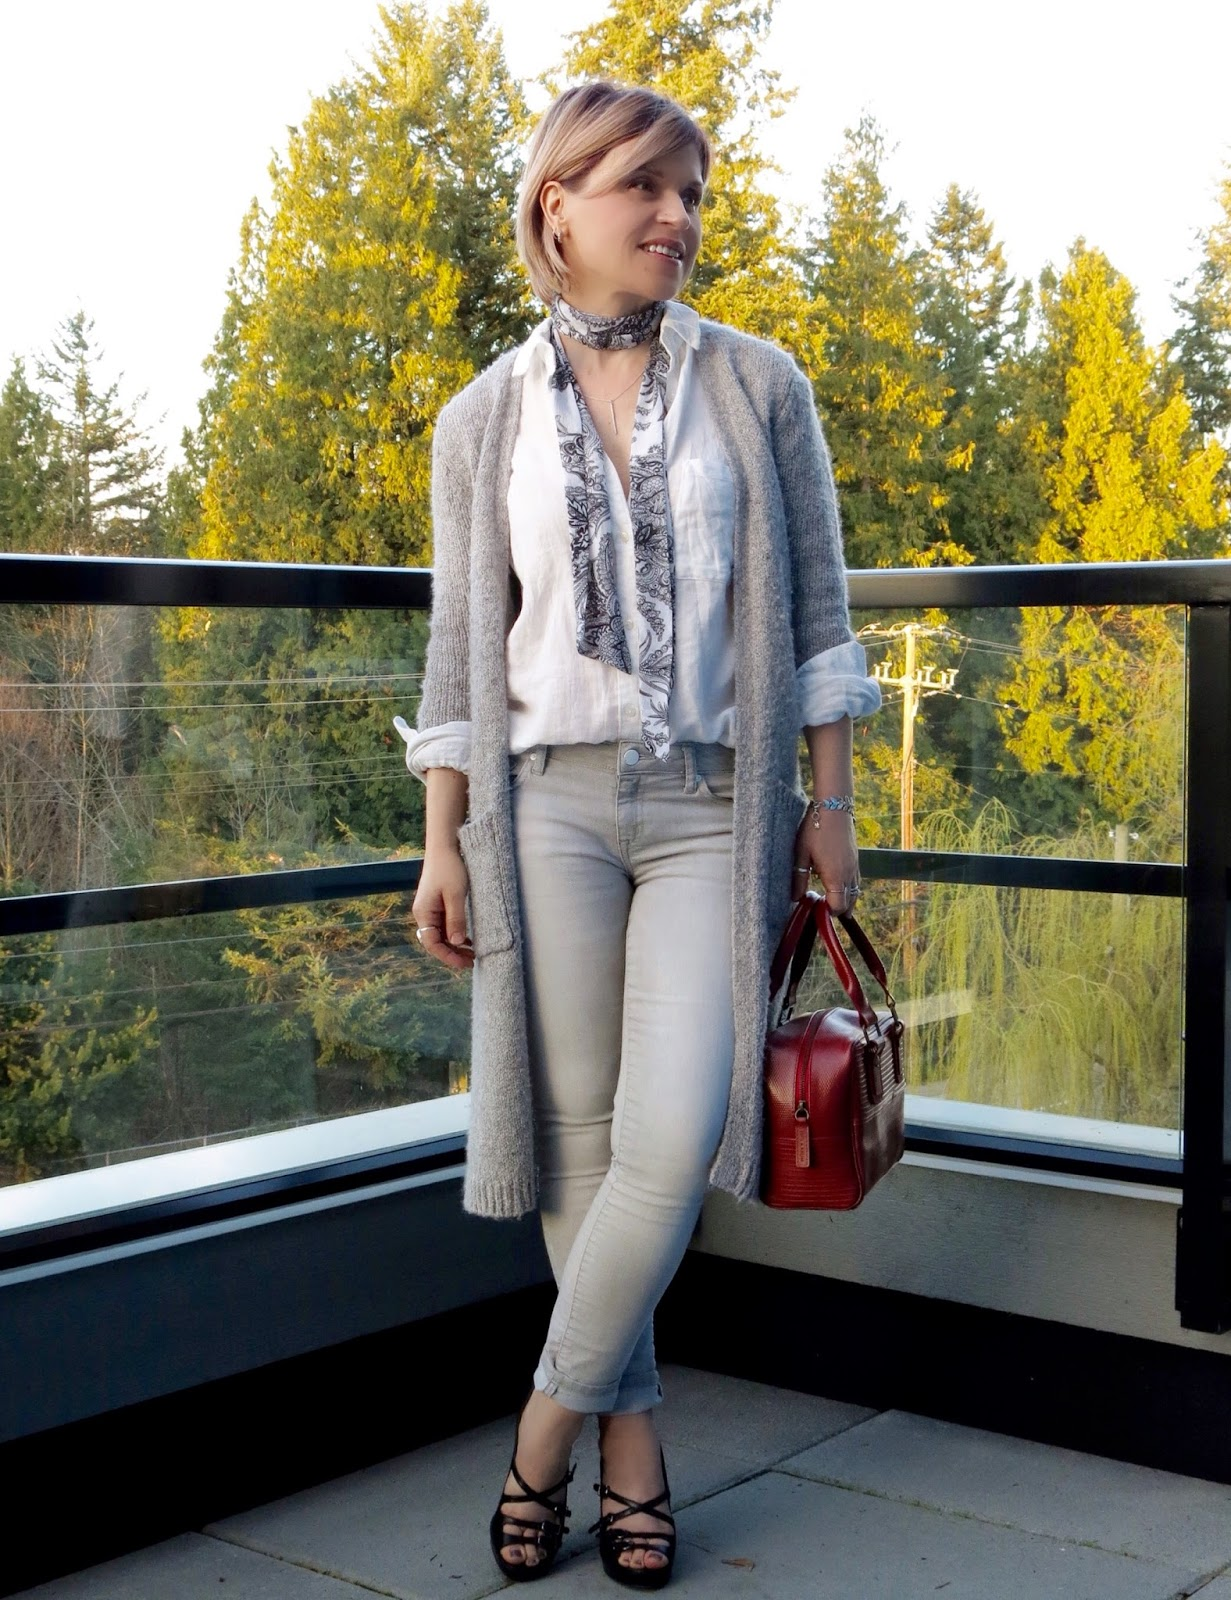 styling a white shirt with a long cardigan, grey skinny jeans and scarf, and strappy heels